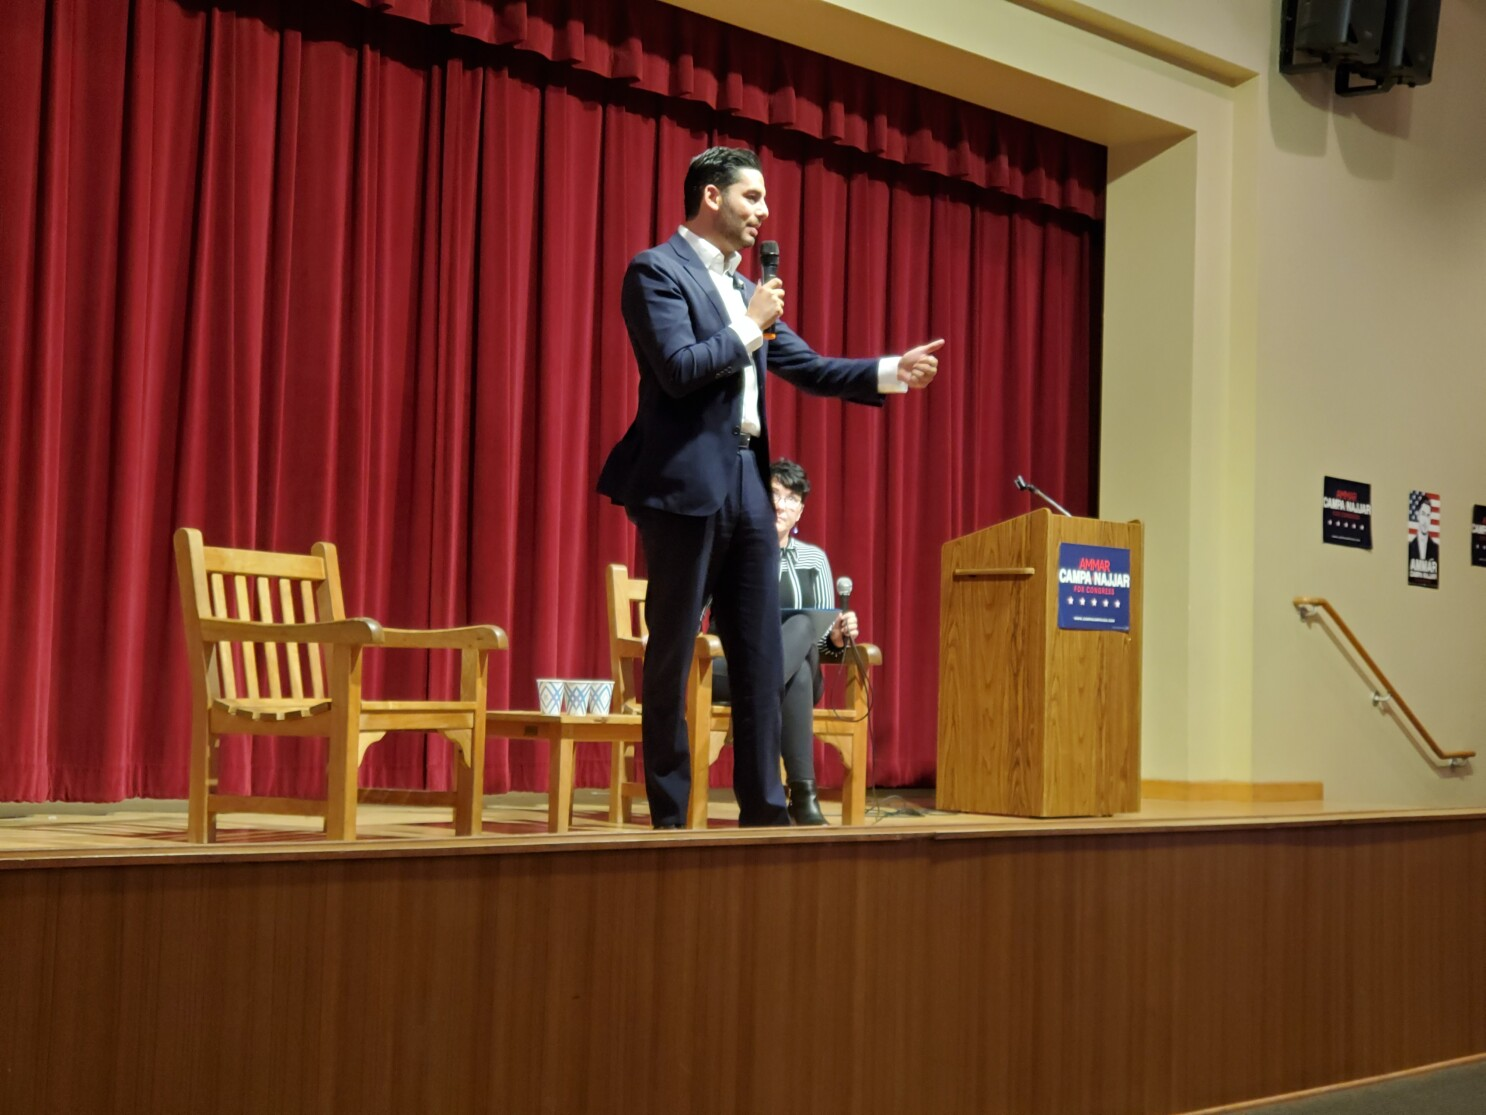 At town hall, Campa-Najjar says he will fight money's influence on politics